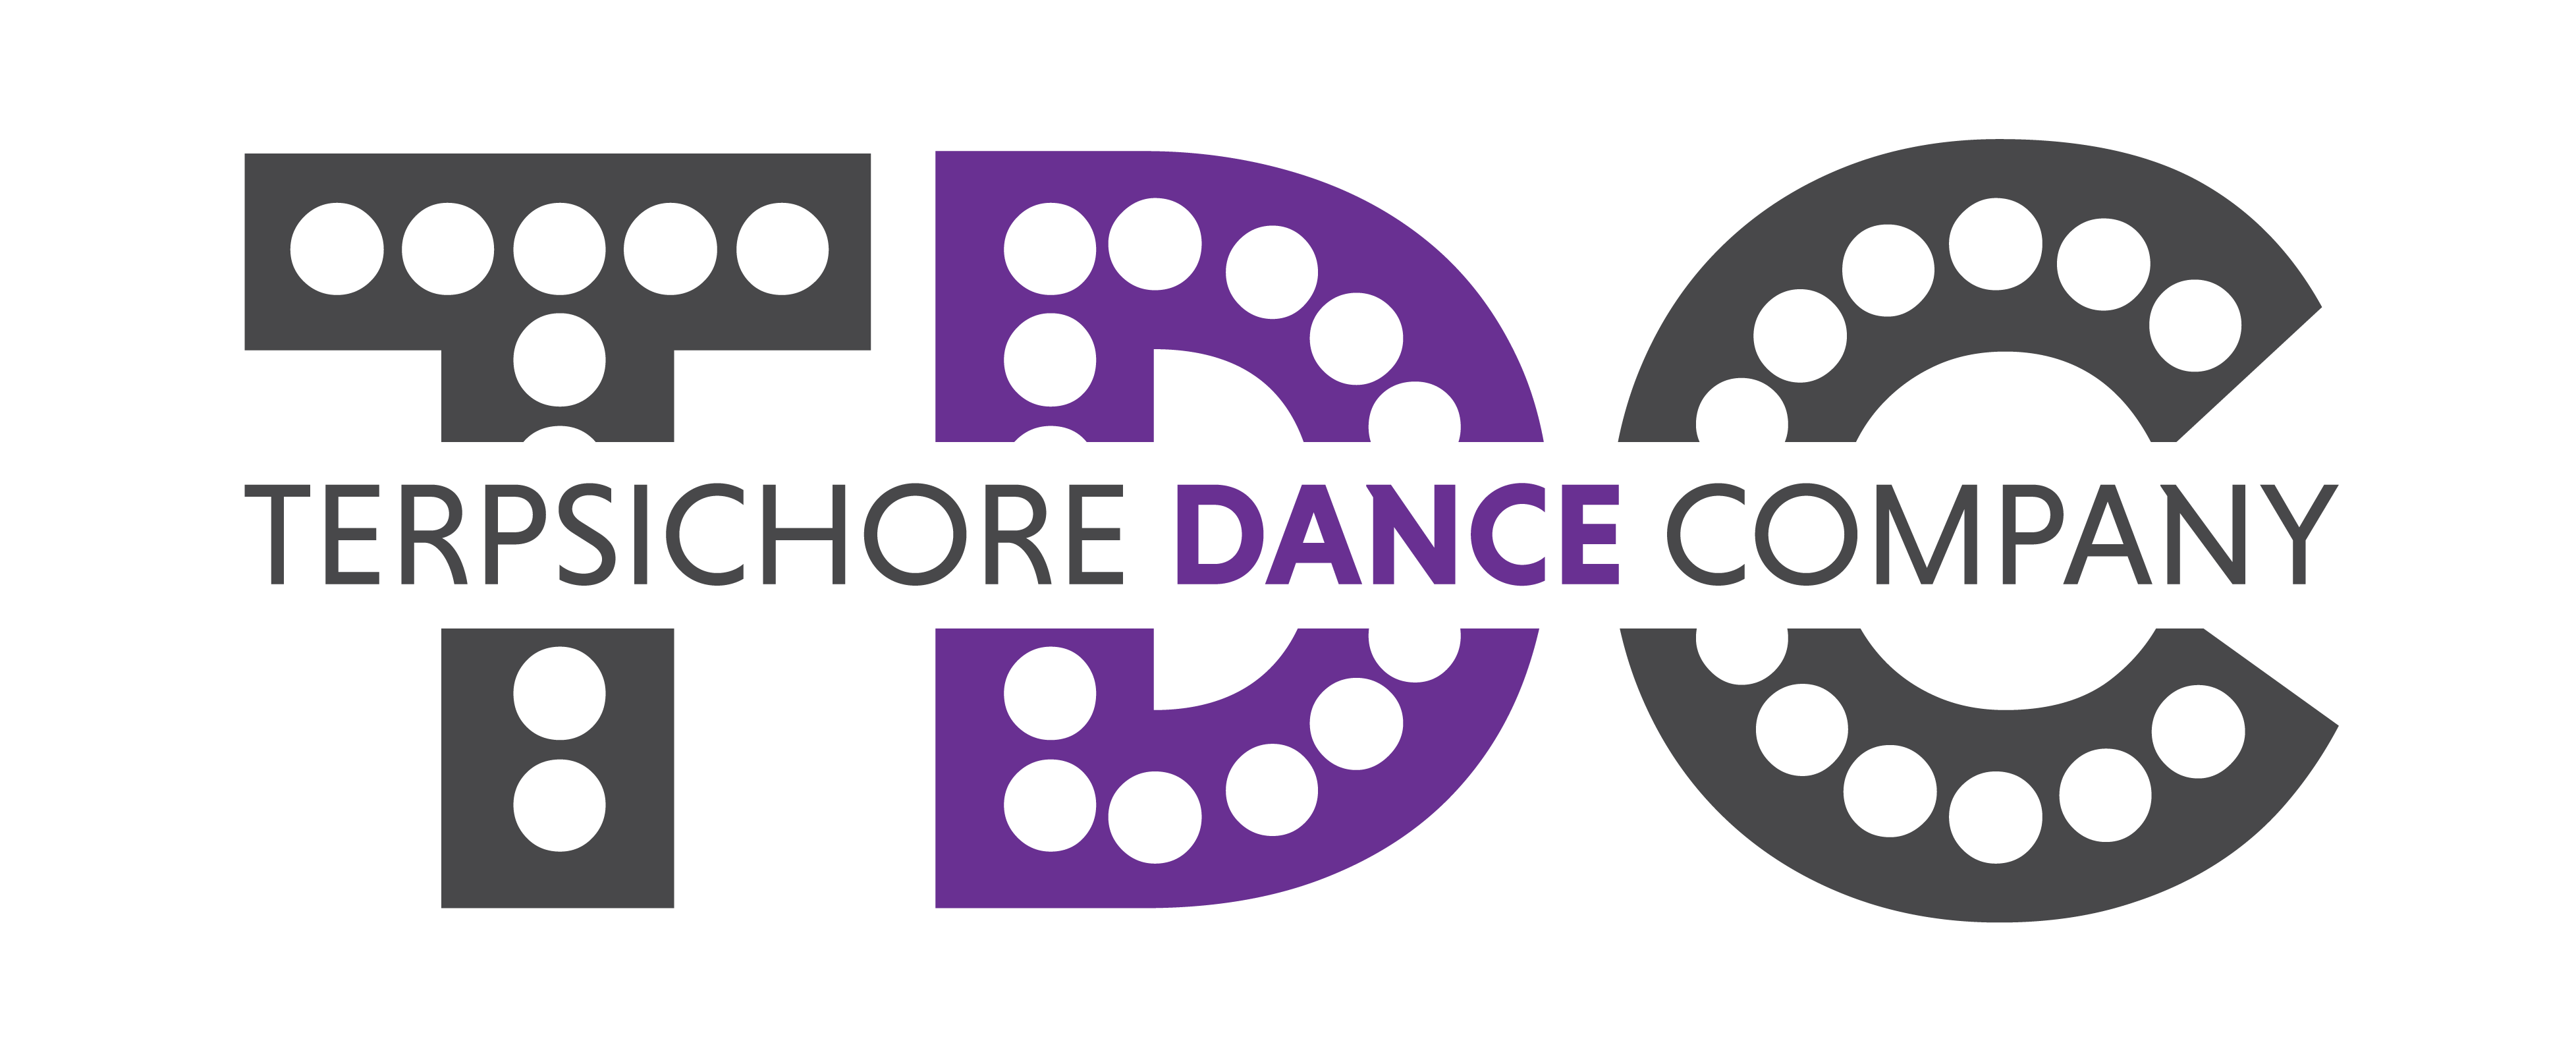 Logo png brand. Dance clipart dance troupe